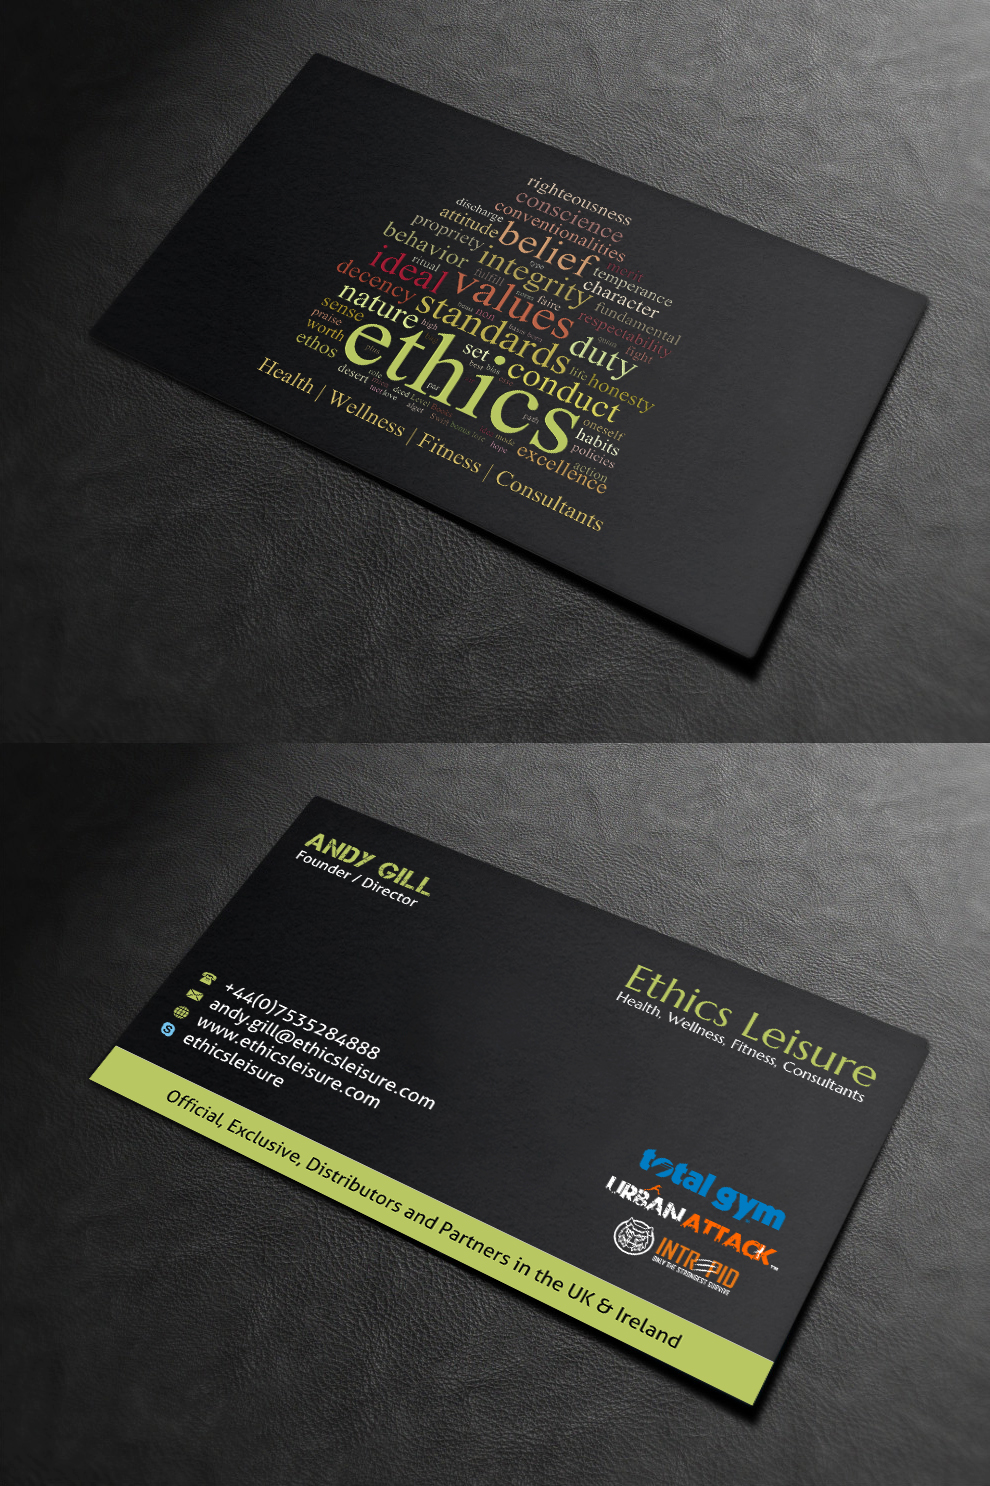 Fitness business card design for a company by indianashok design business card design by indianashok for this project design 13709442 colourmoves